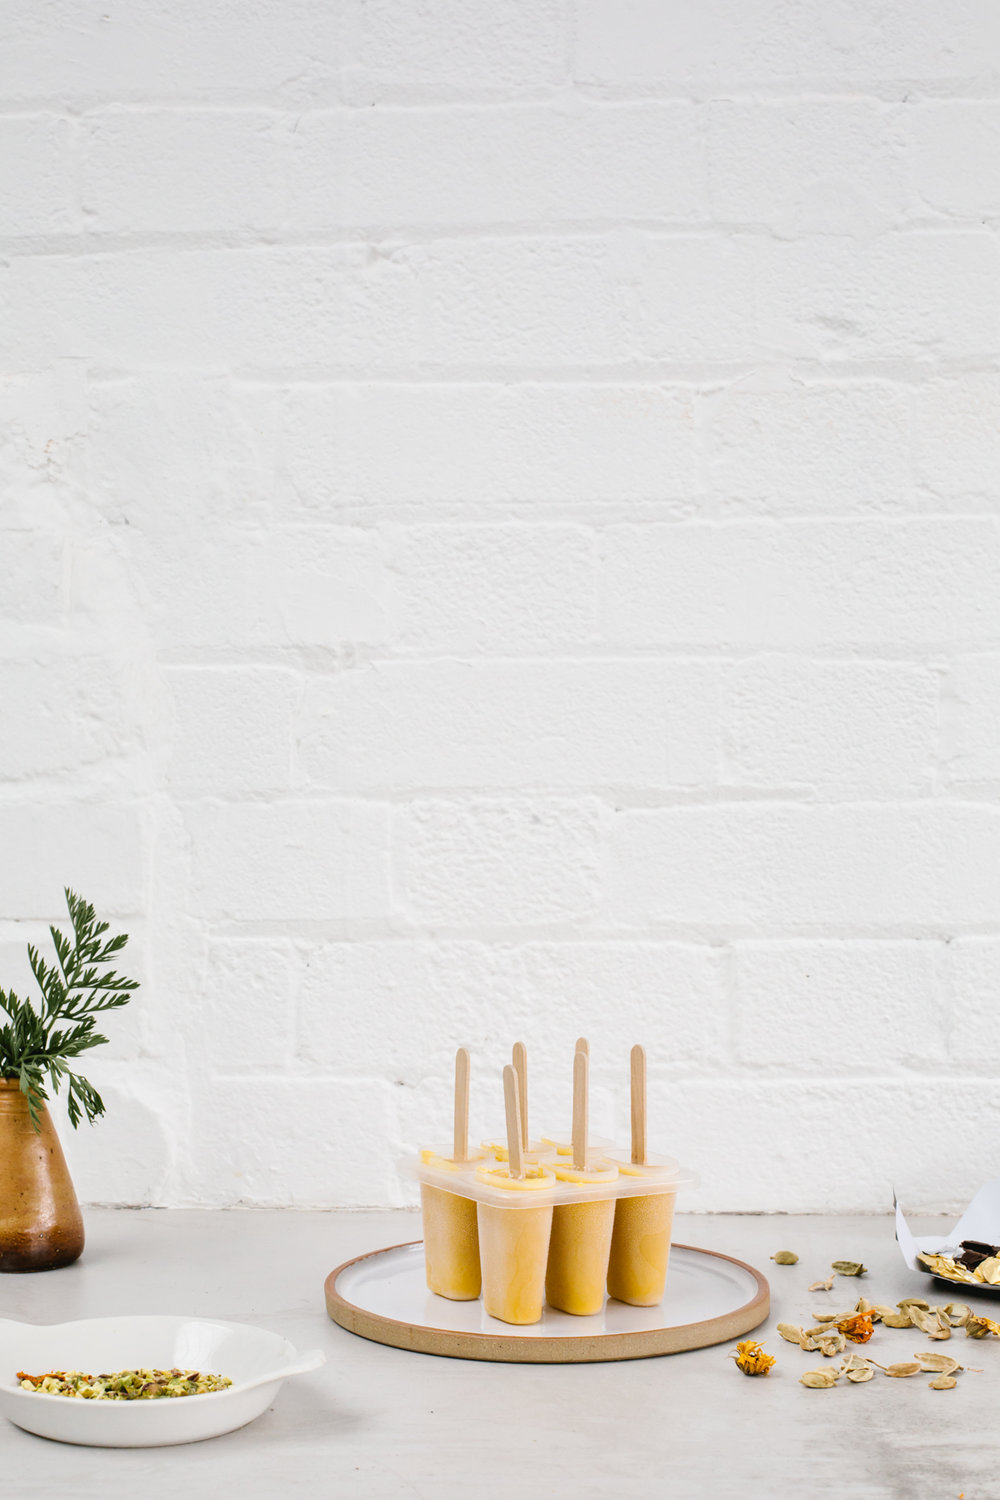 Carrot Halwa Popsicles by Erika Raxworthy / Rye London